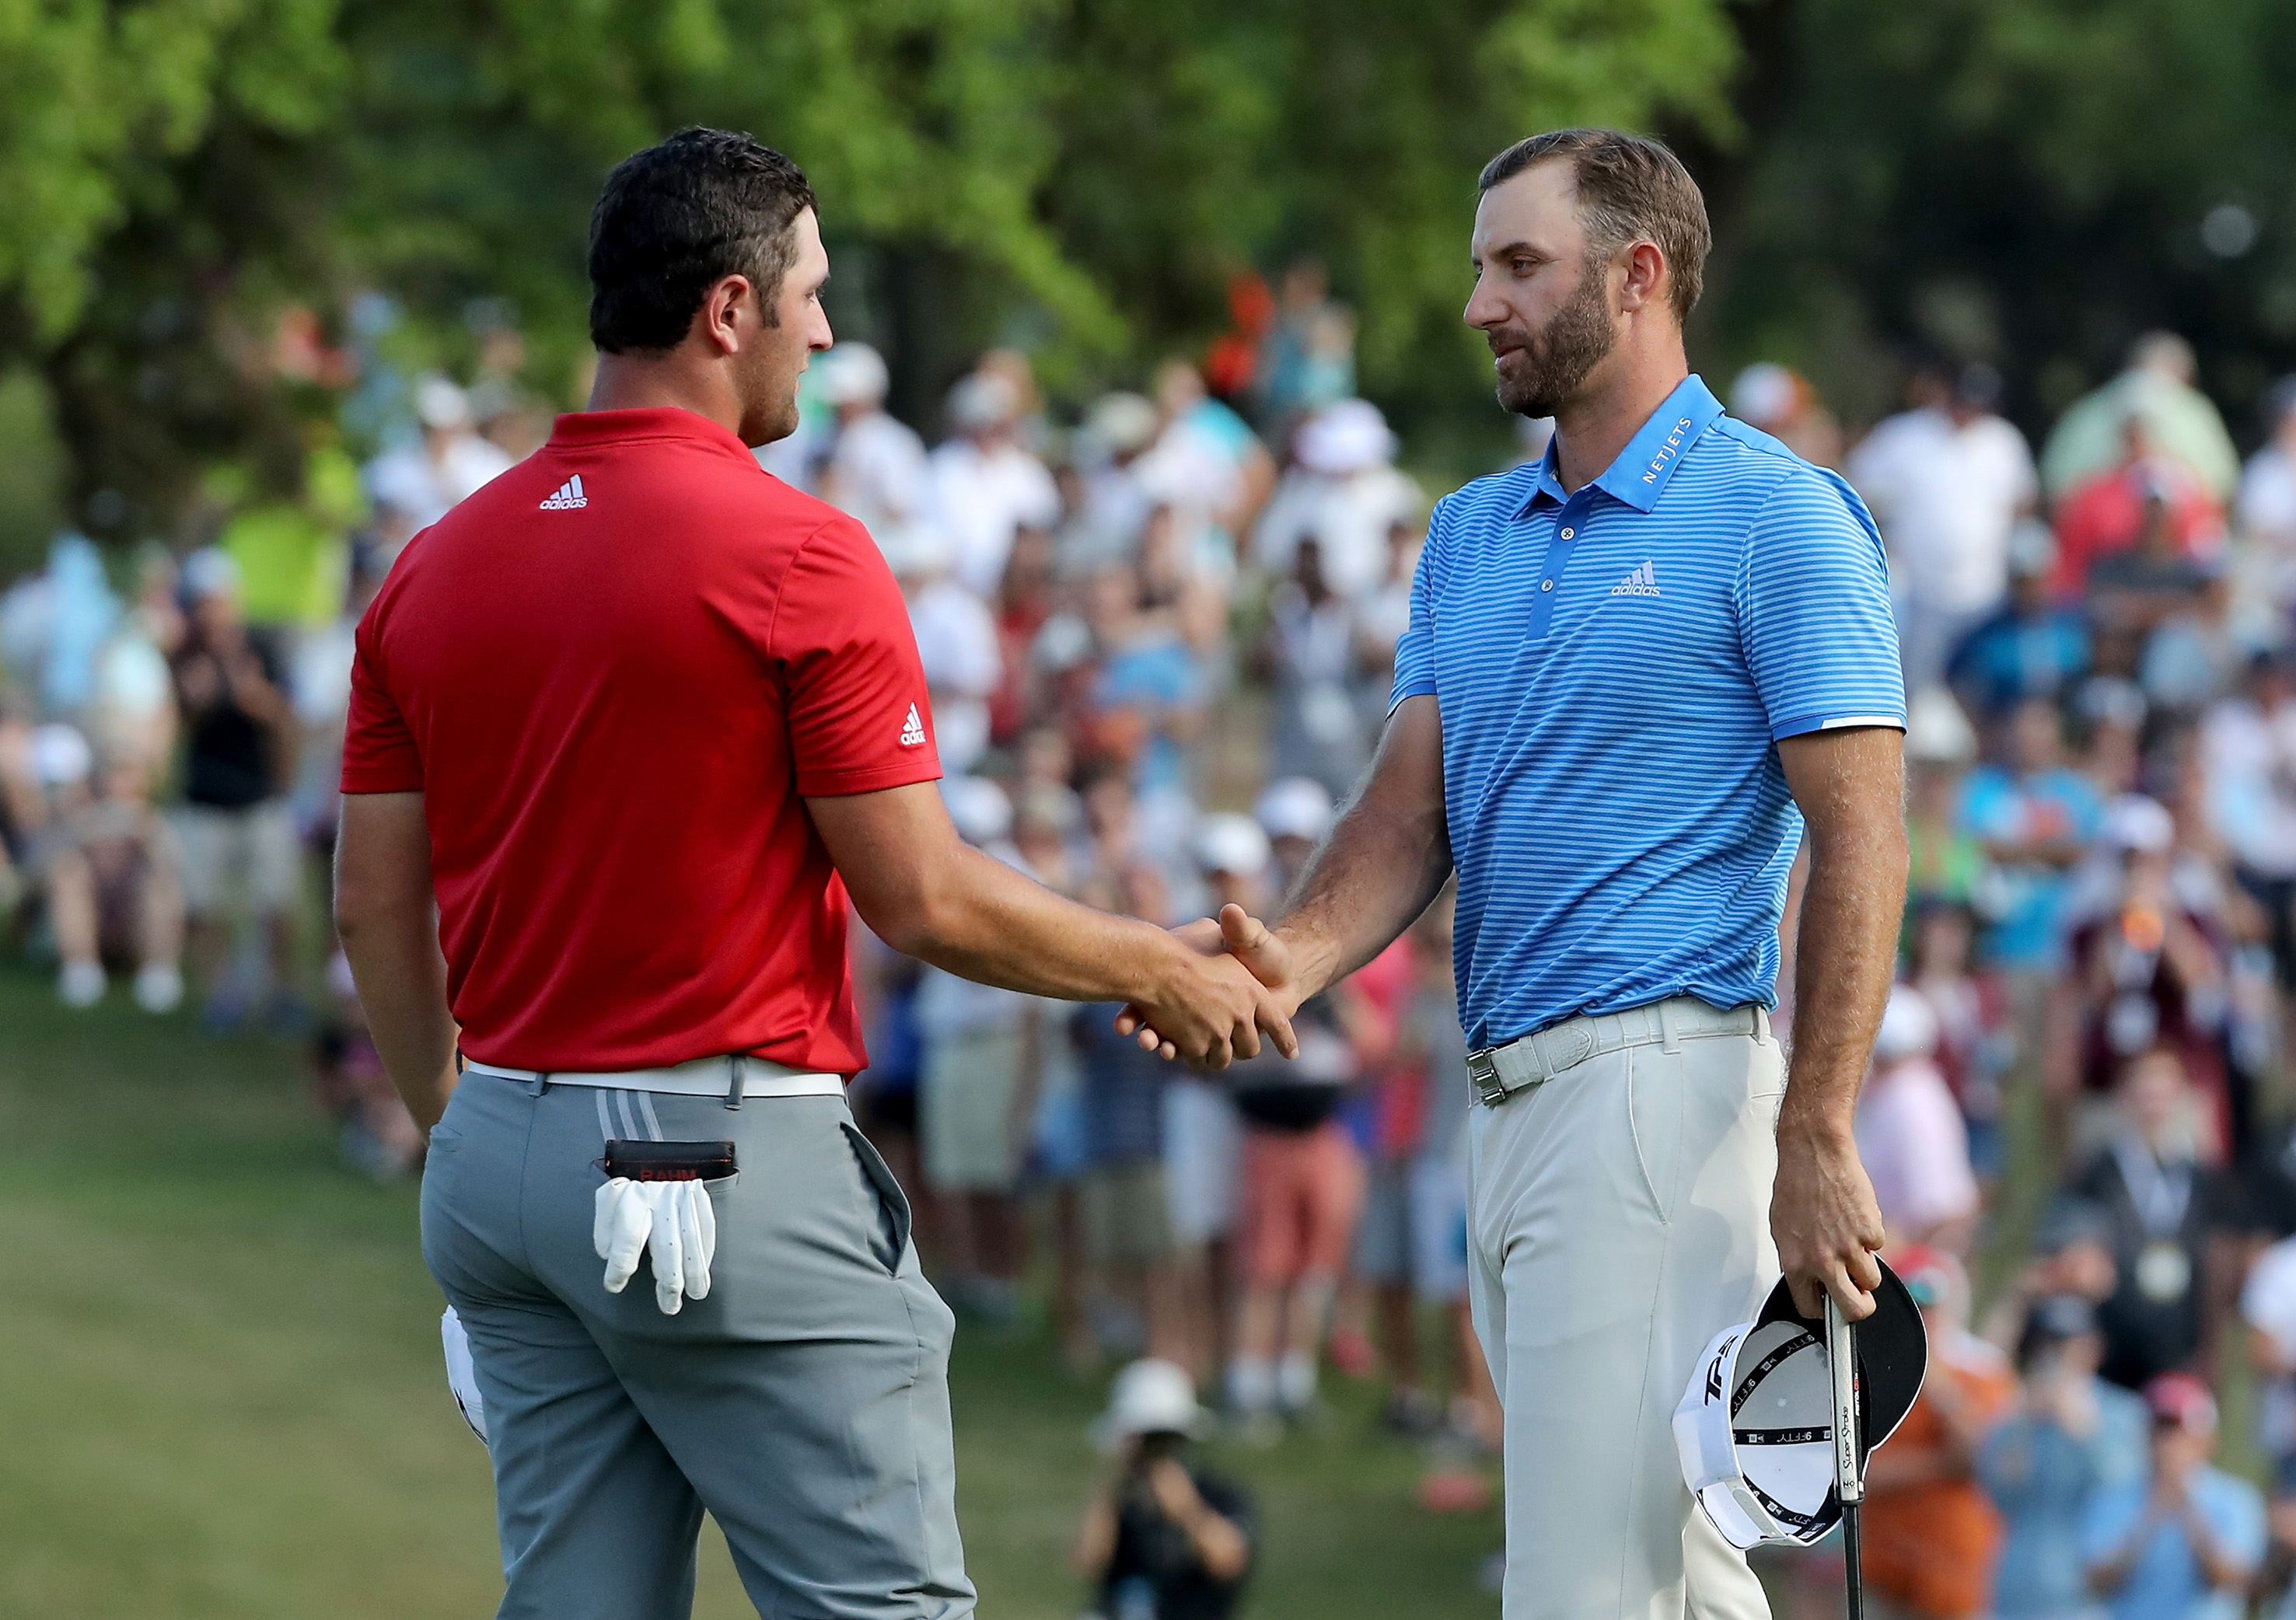 World Golf Championships-Dell Match Play – Final Day